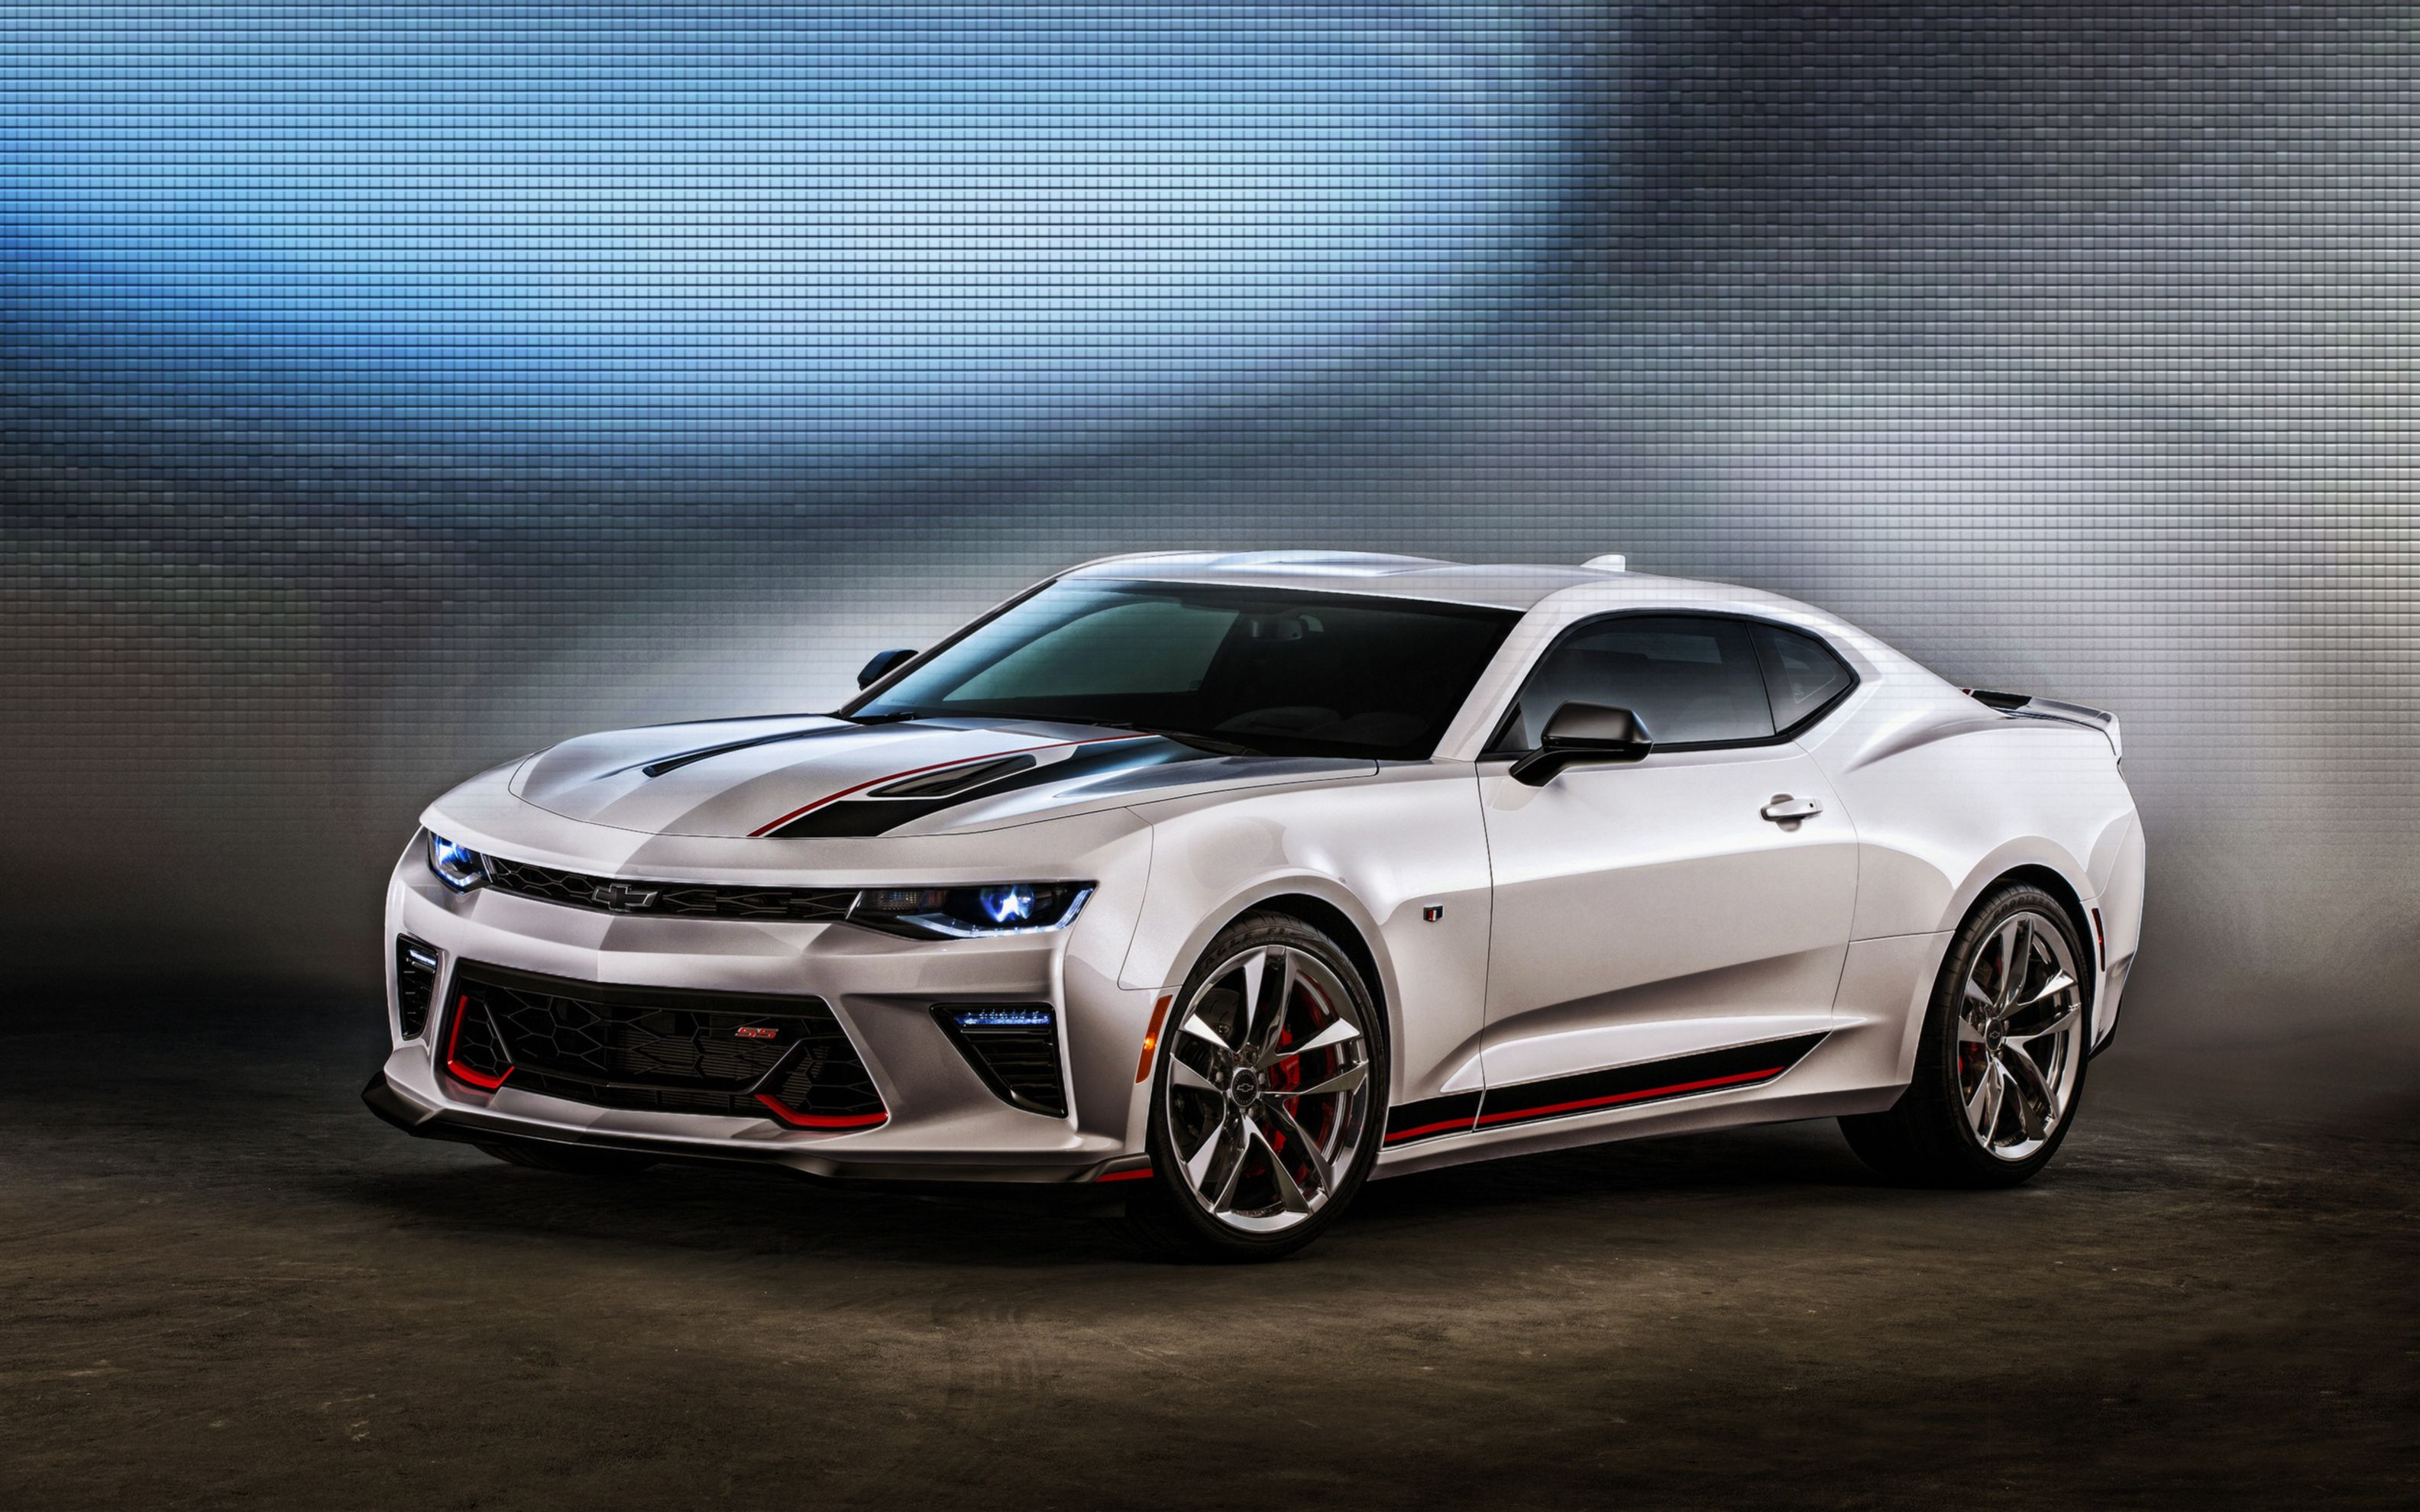 Download free HD 2016 Chevrolet Camaro Ss Concept Wide Wallpaper, image